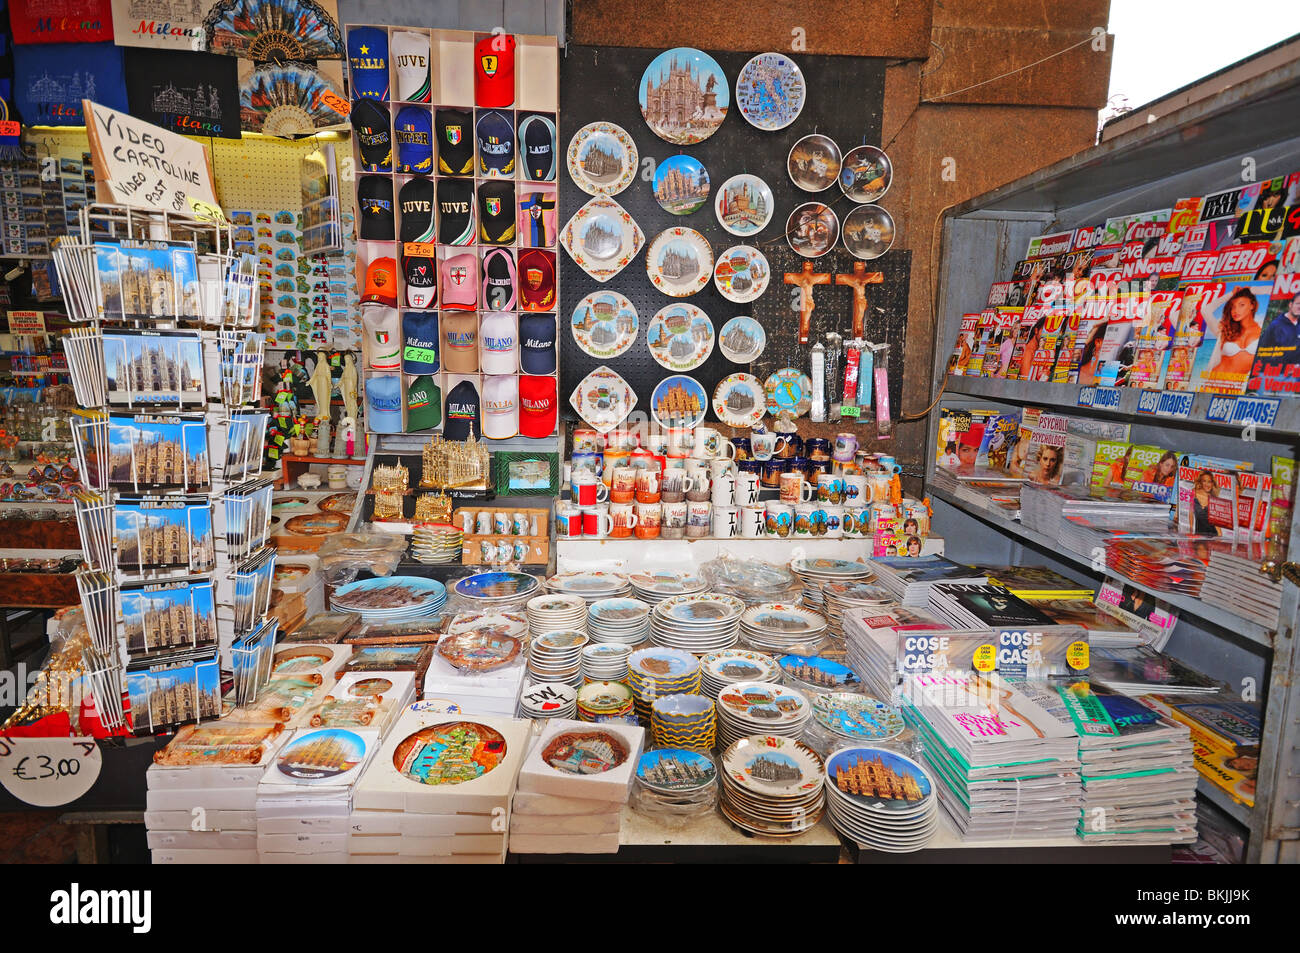 Kiosk selling postcards and tourist souvenirs at entrance to the Galleria Piazza del Duomo Milan Italy - Stock Image